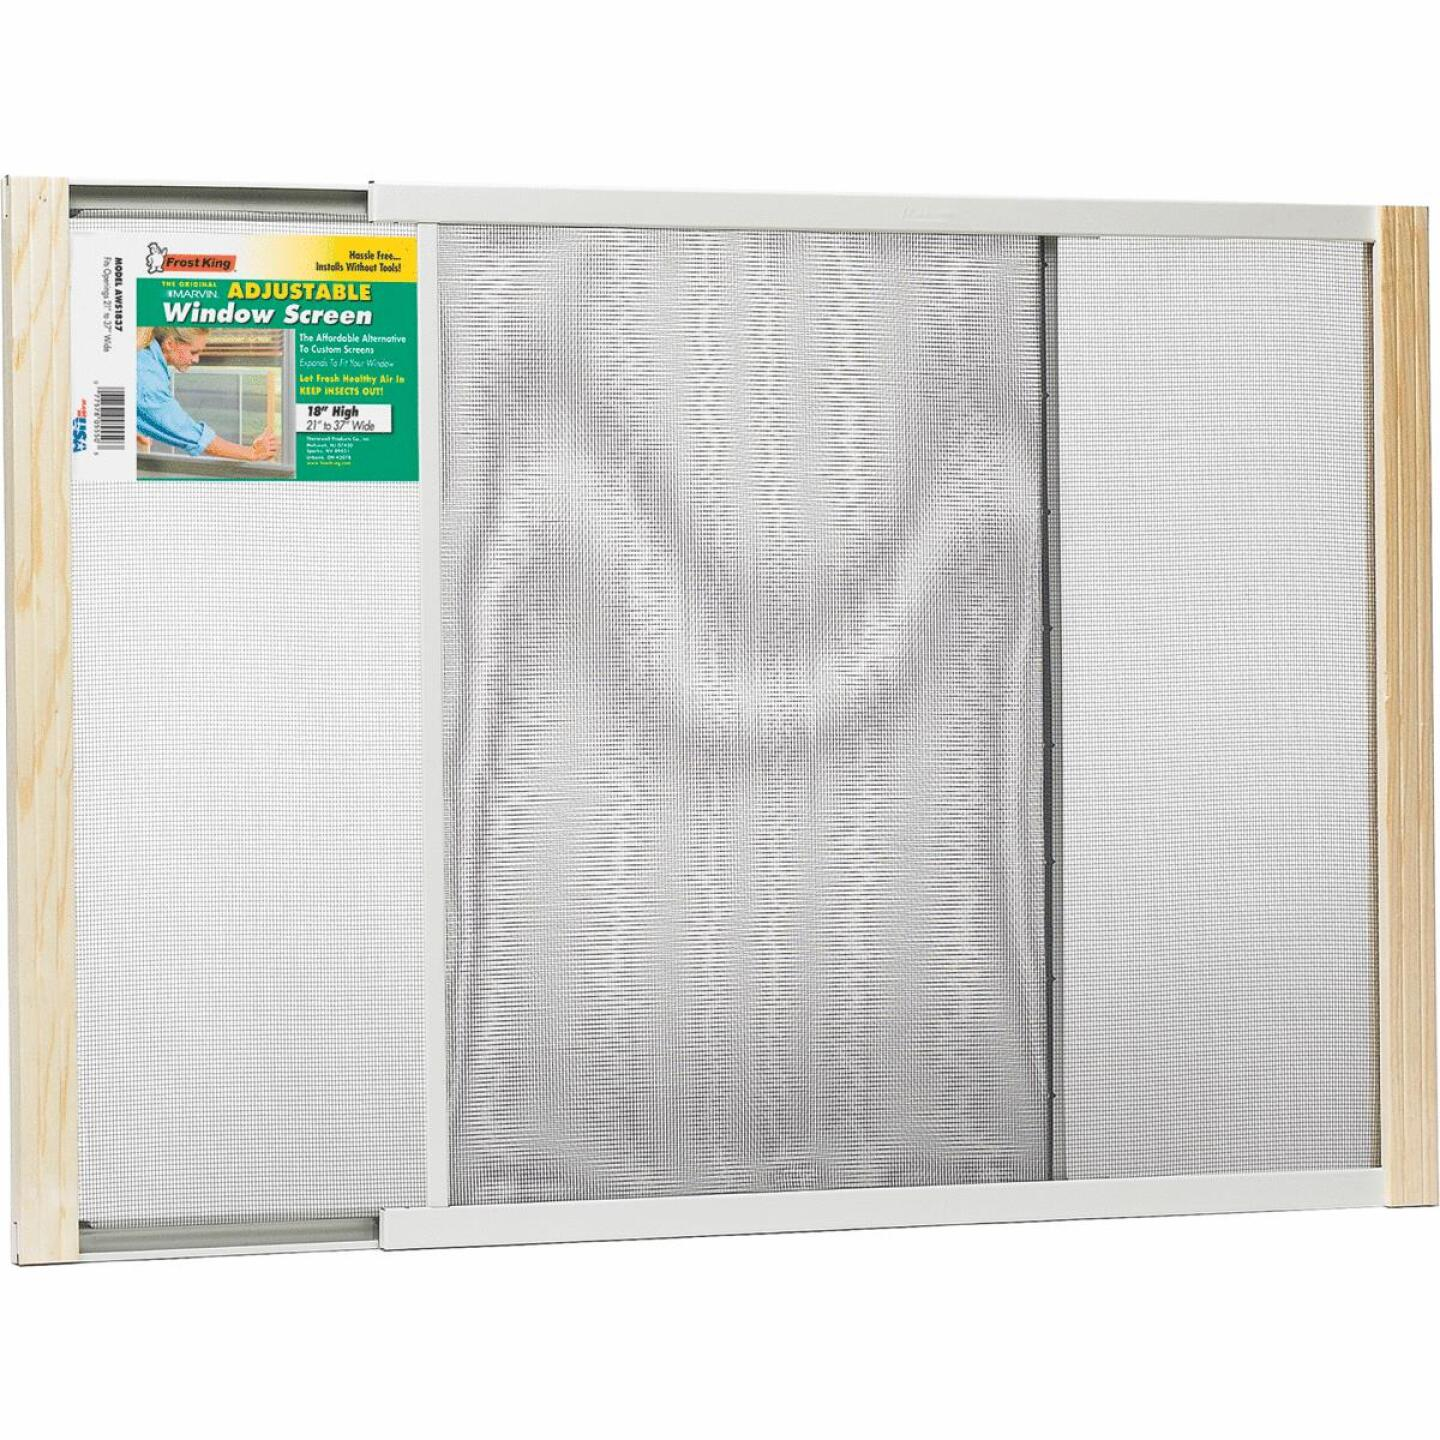 W.B. Marvin 18 In. x 21-37 In. Adjustable Window Screens by Frost King Image 1